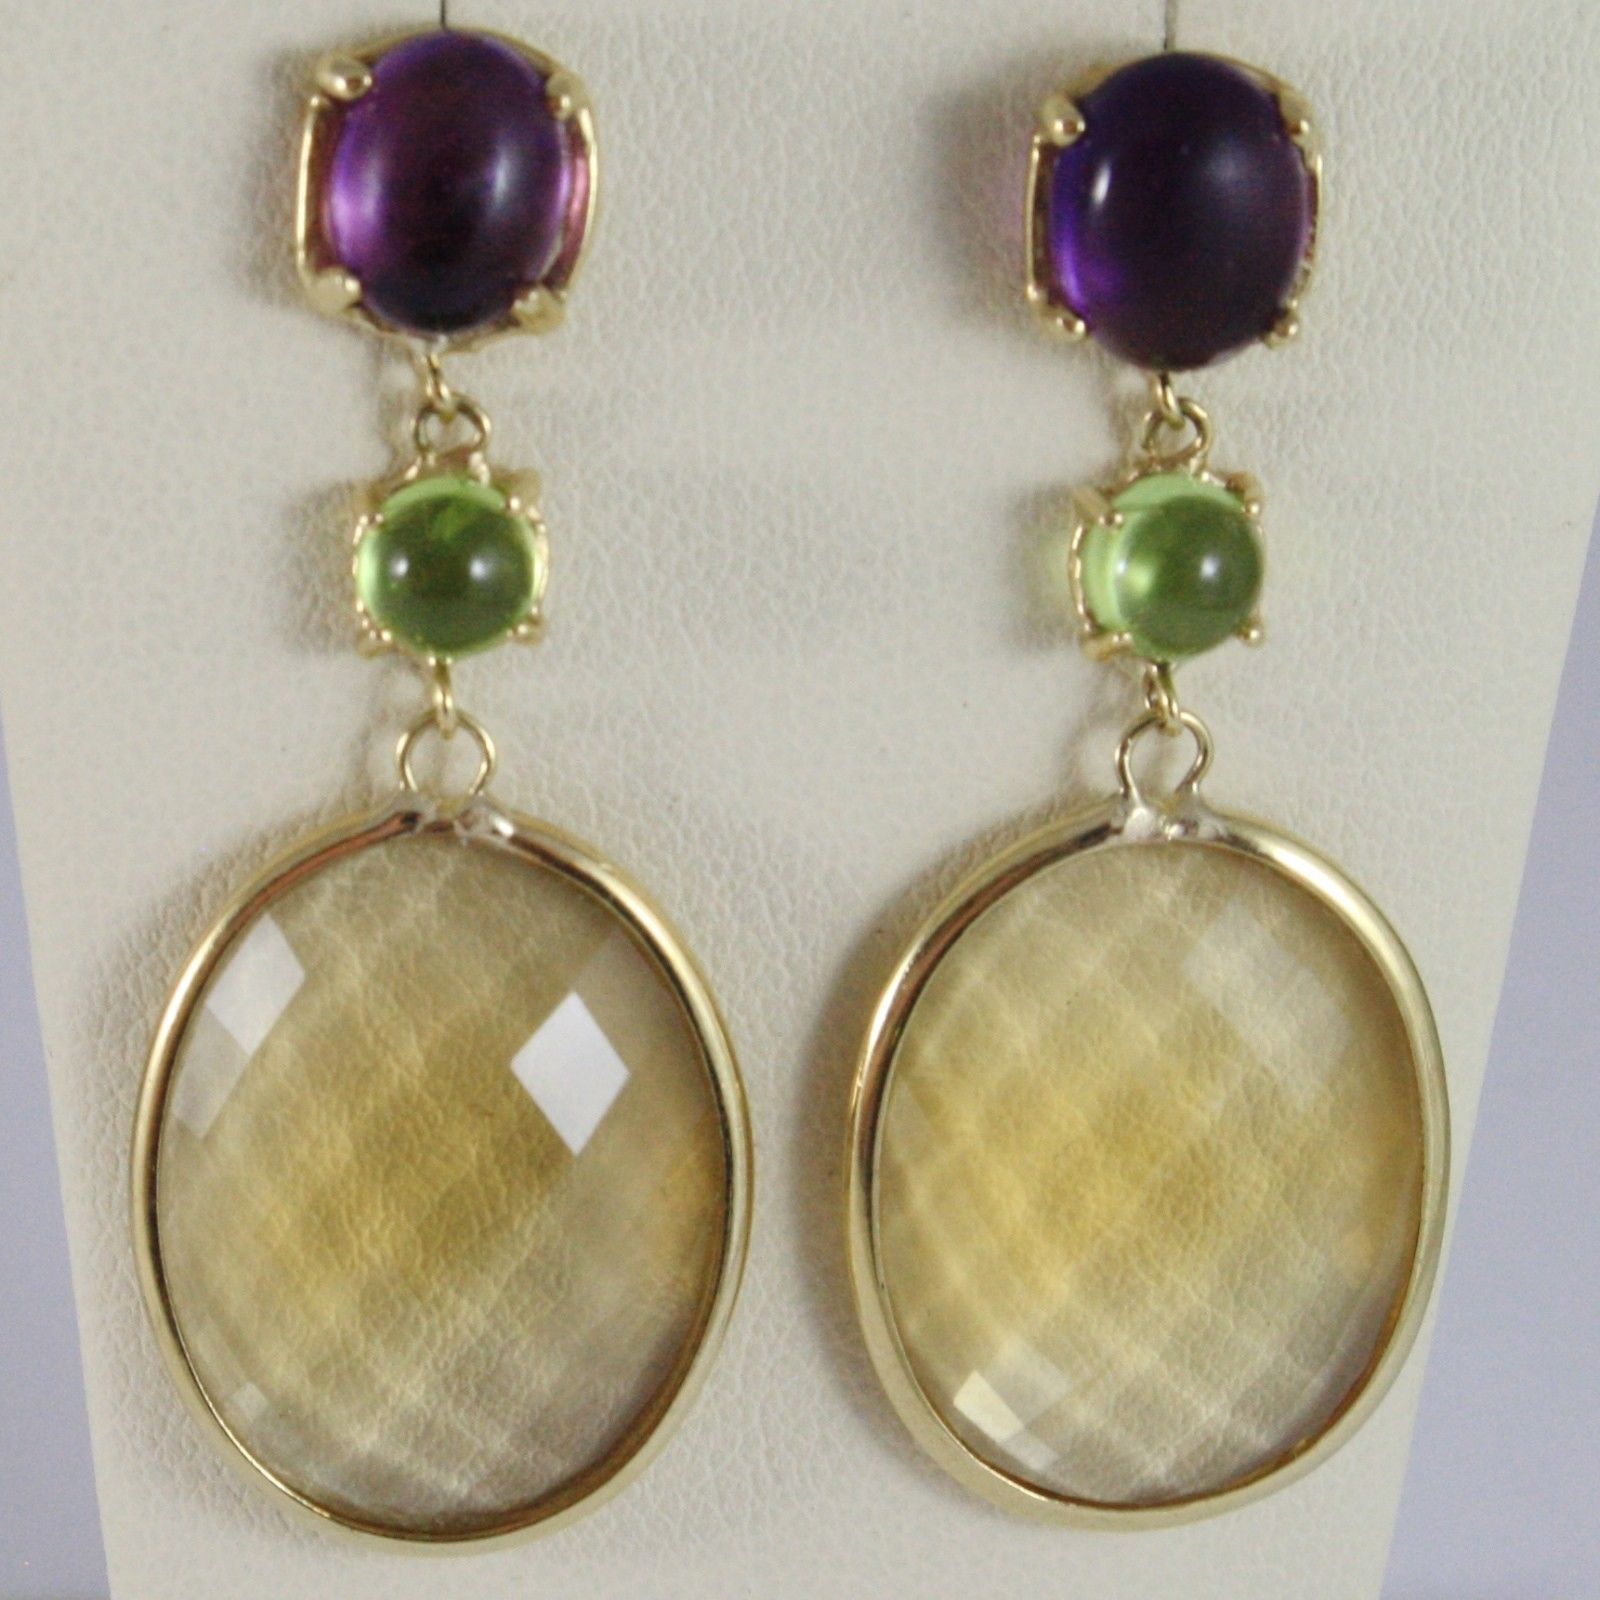 9K YELLOW GOLD PENDANT EARRINGS, CUSHION CITRINE, AMETHYST AND GREEN PERIDOT